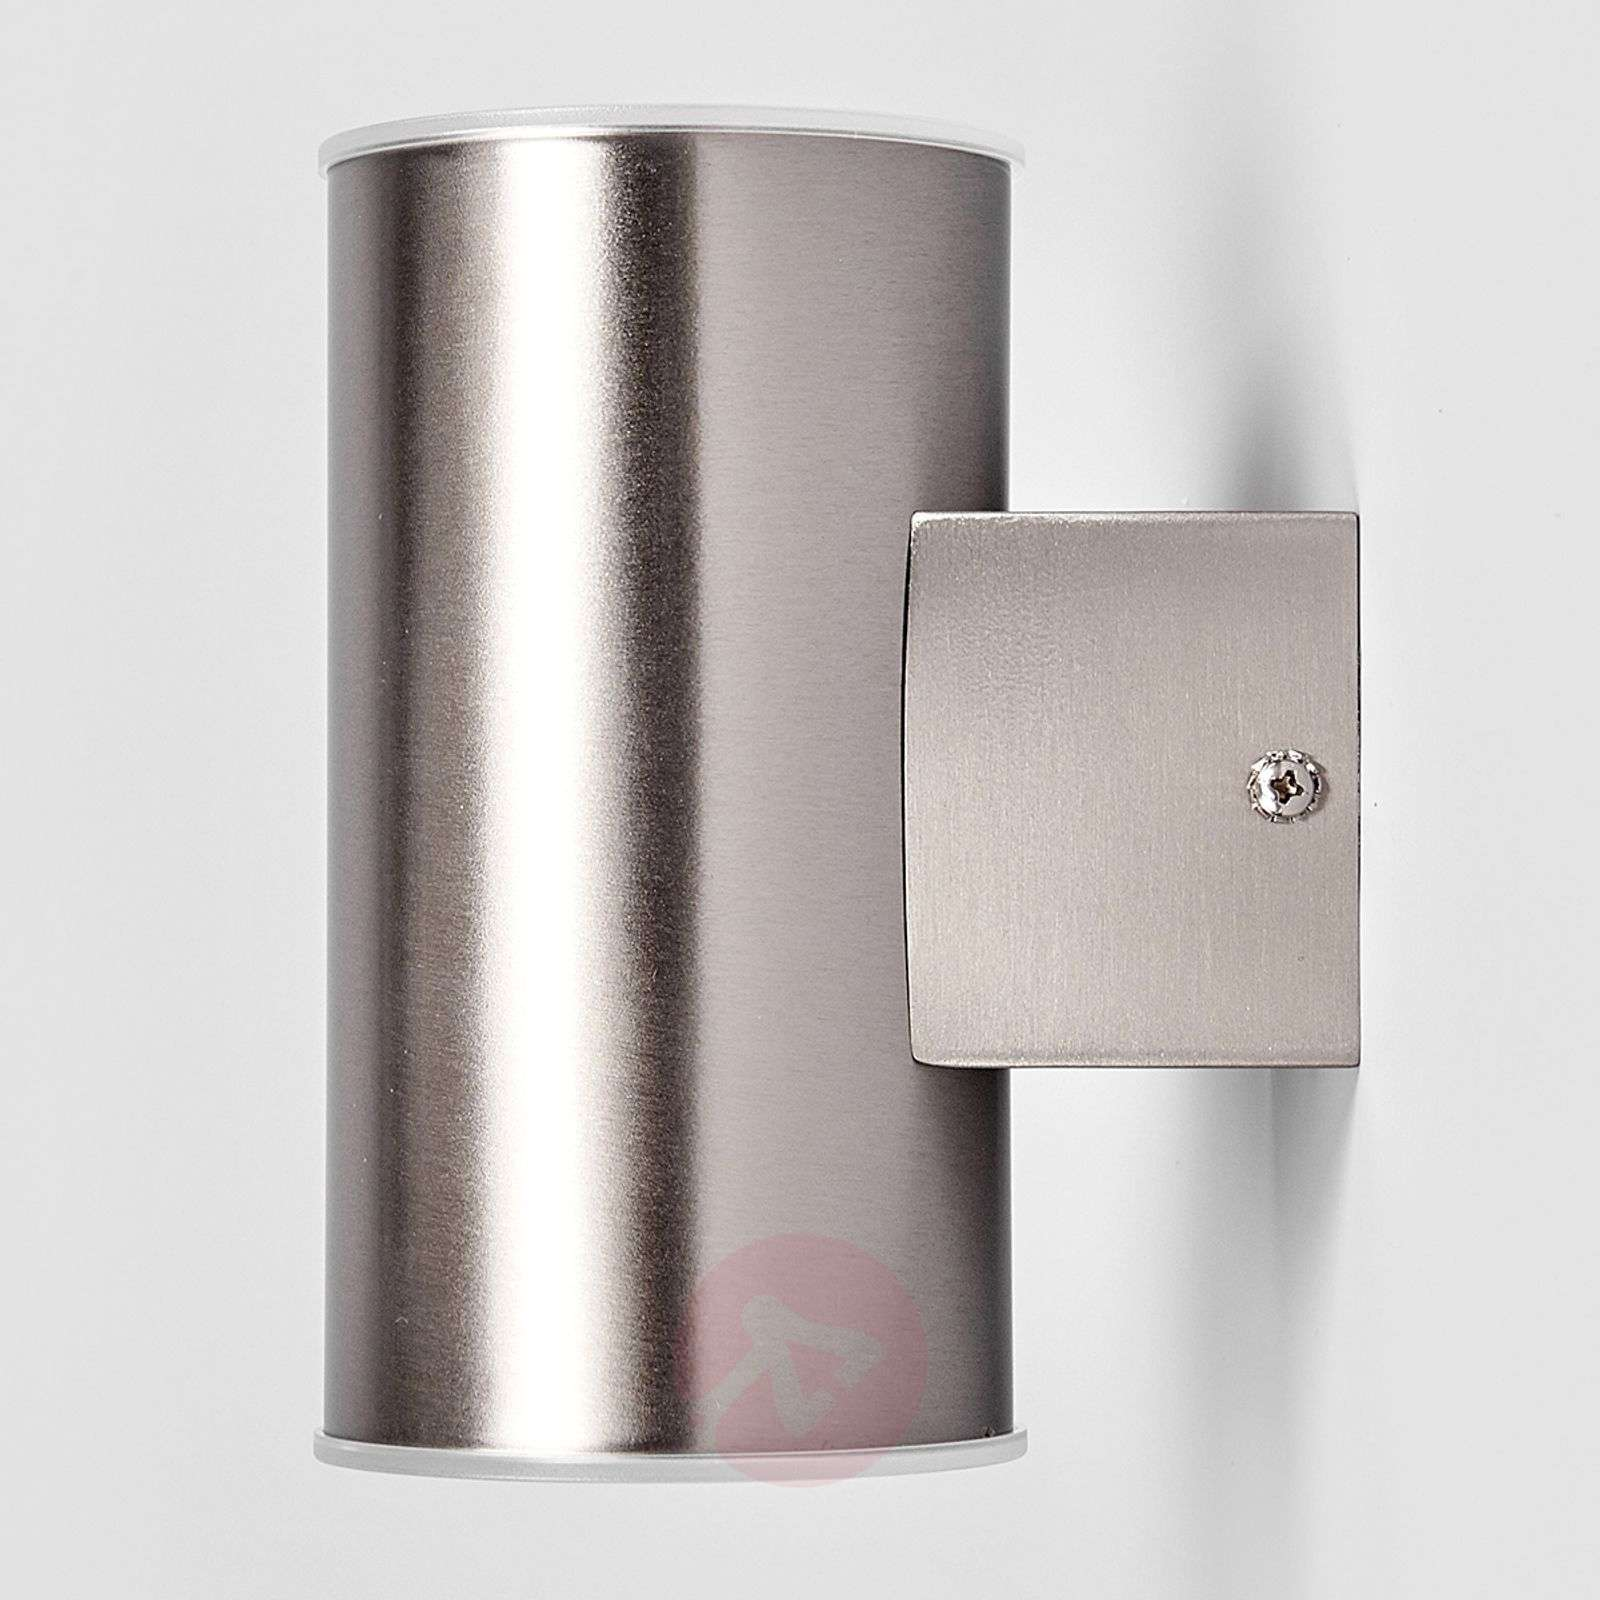 Morena Stainless steel outdoor wall light LEDs-9988056-01